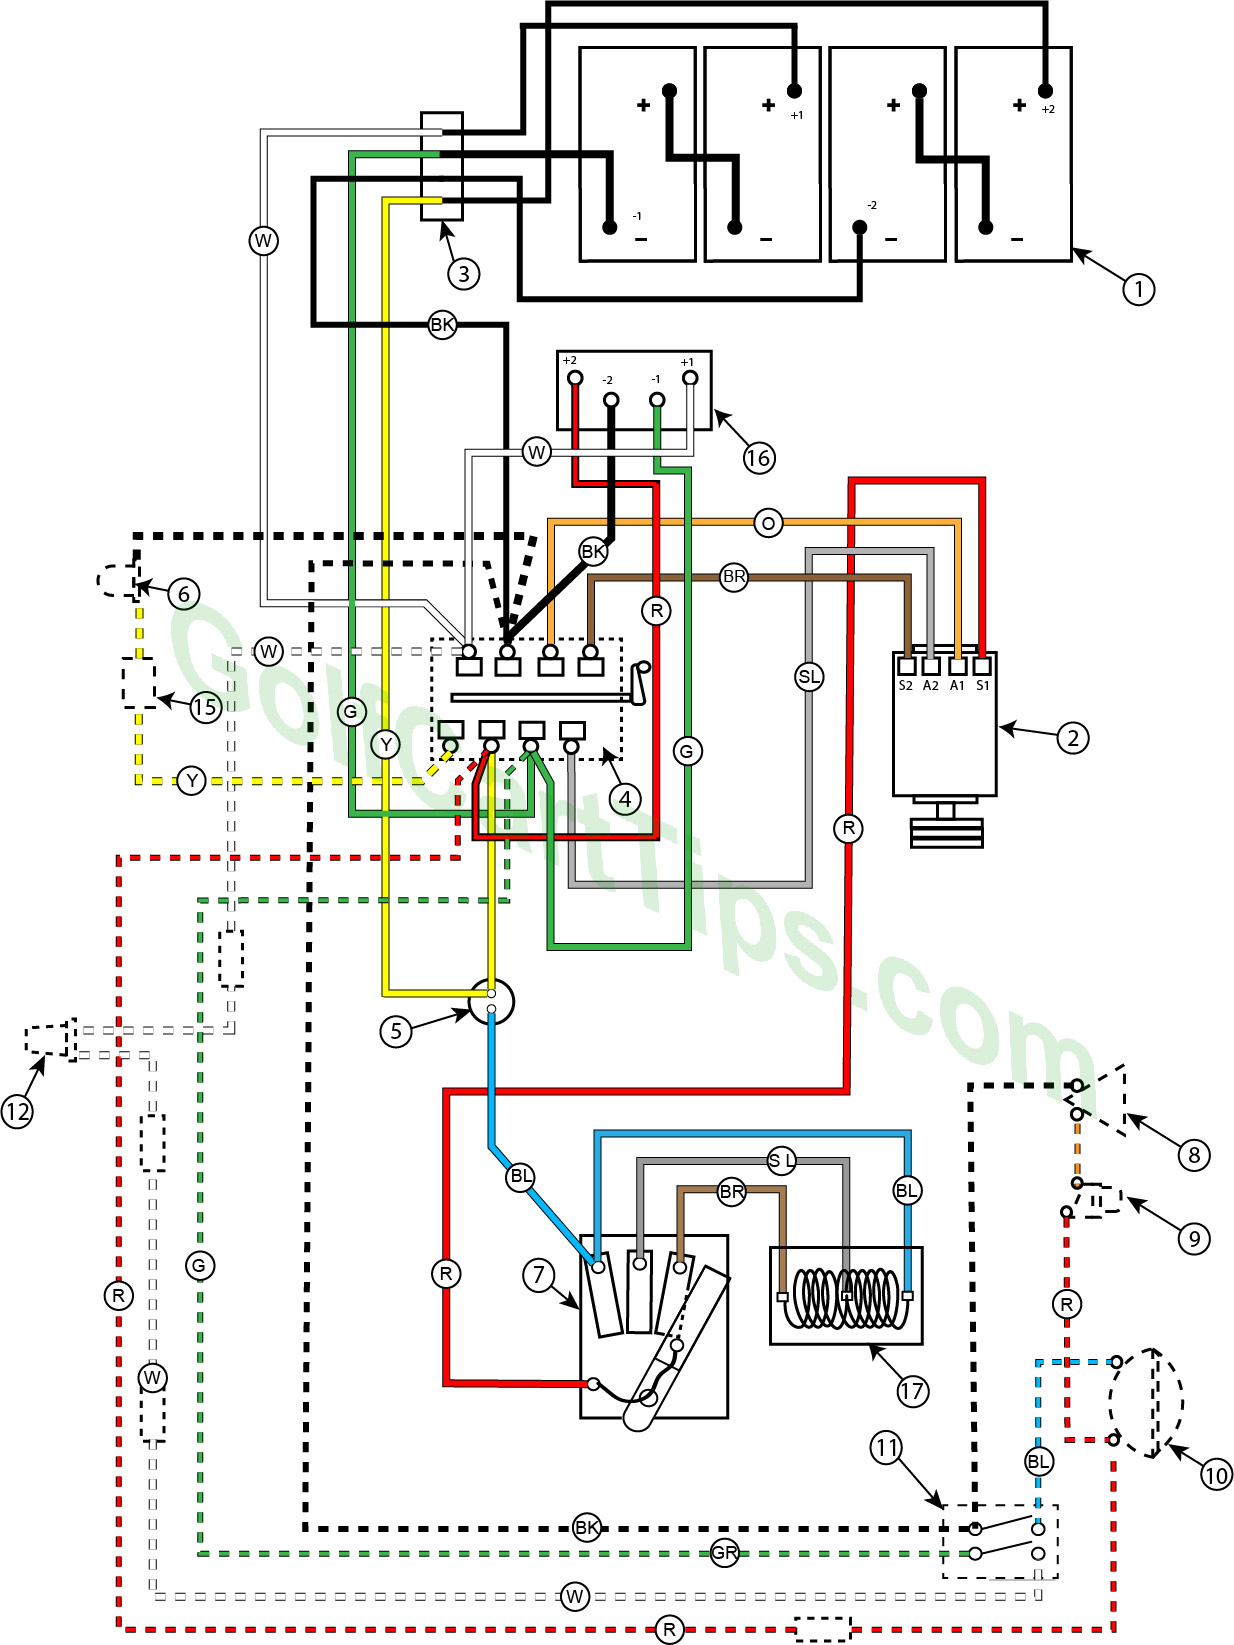 48 volt cushman wiring diagram wiring diagrams value cushman wiring diagram wiring diagram datasource 1974 cushman wiring diagram wiring diagram site cushman 48 volt